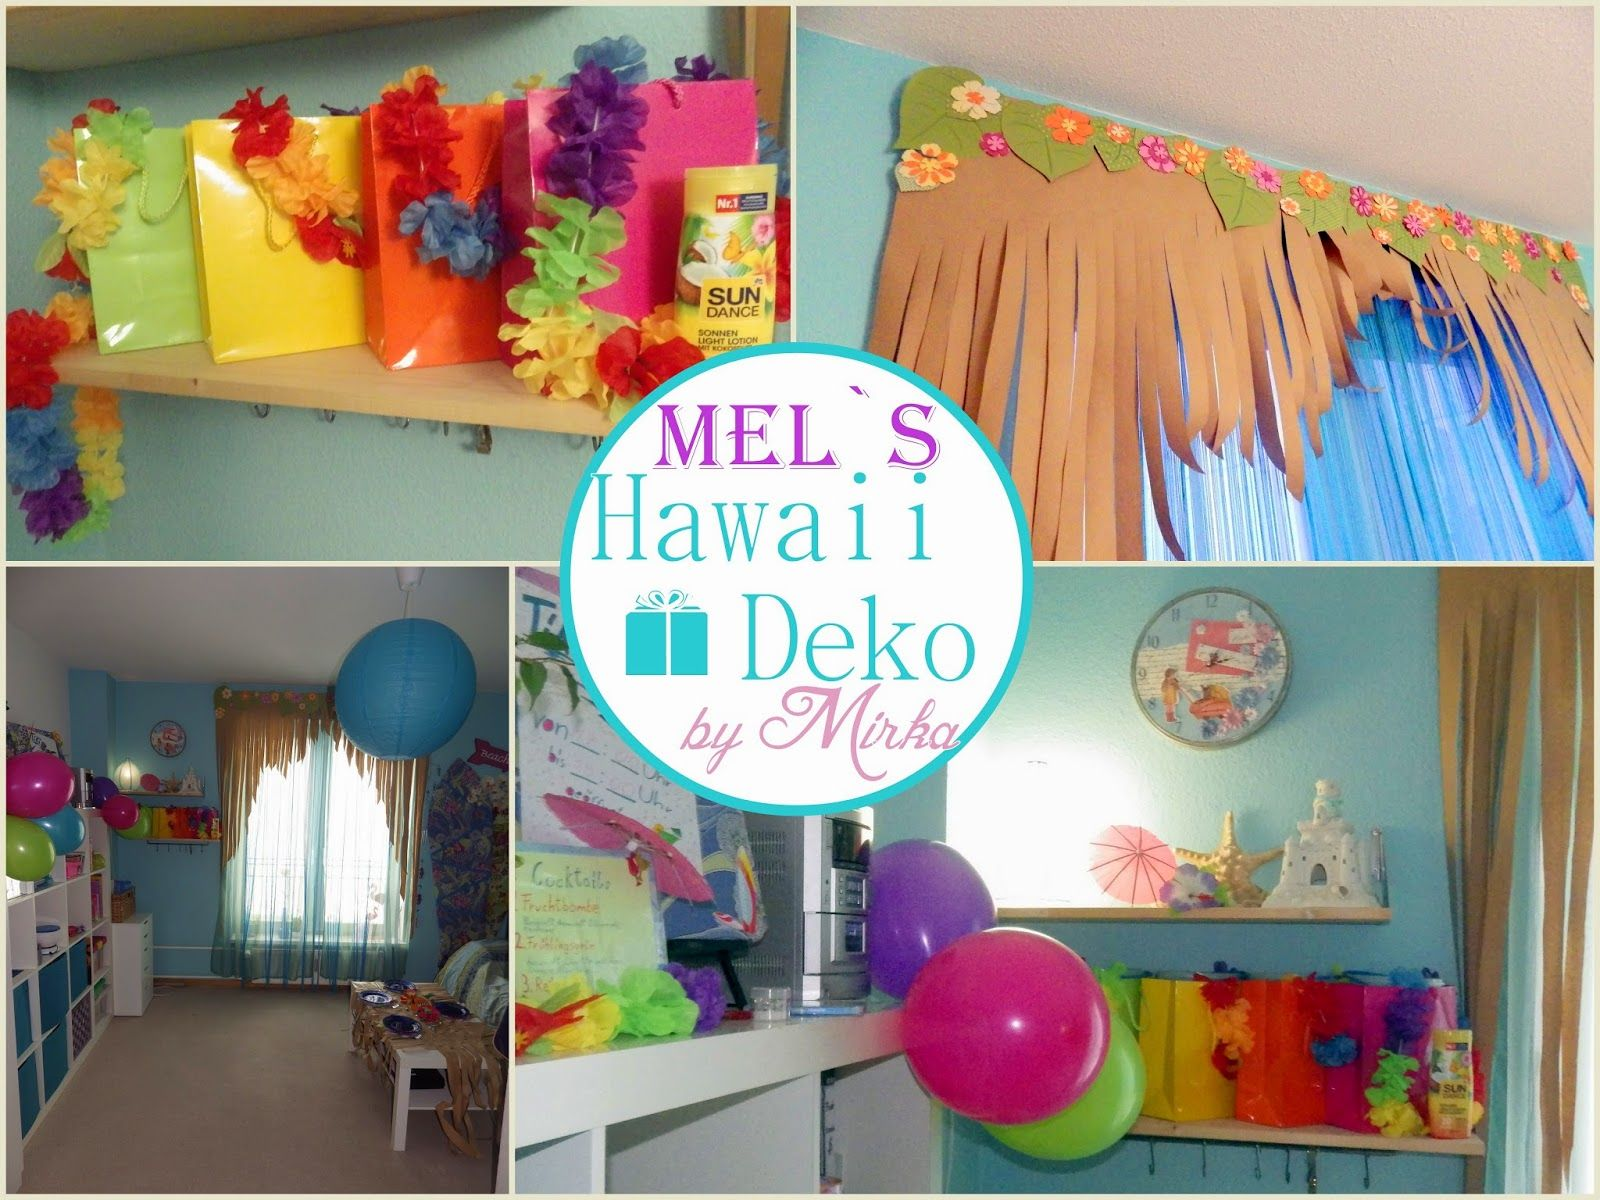 Hawaii party deko mottoparty pinterest hawaii partys for Mottoparty deko